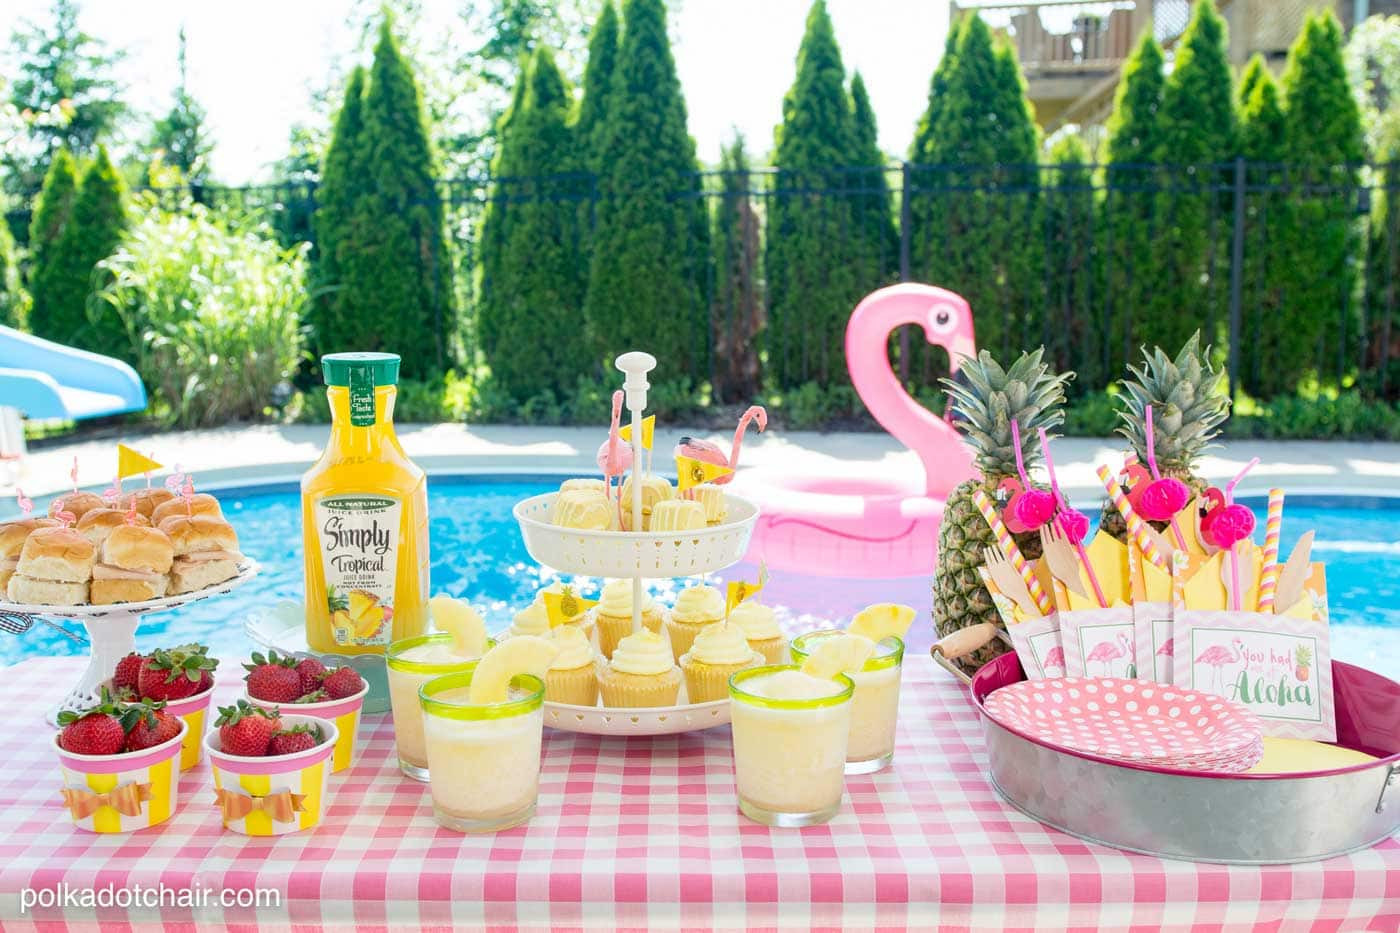 Pool Party Ideas  Summer Backyard Flamingo Pool Party Ideas The Polka Dot